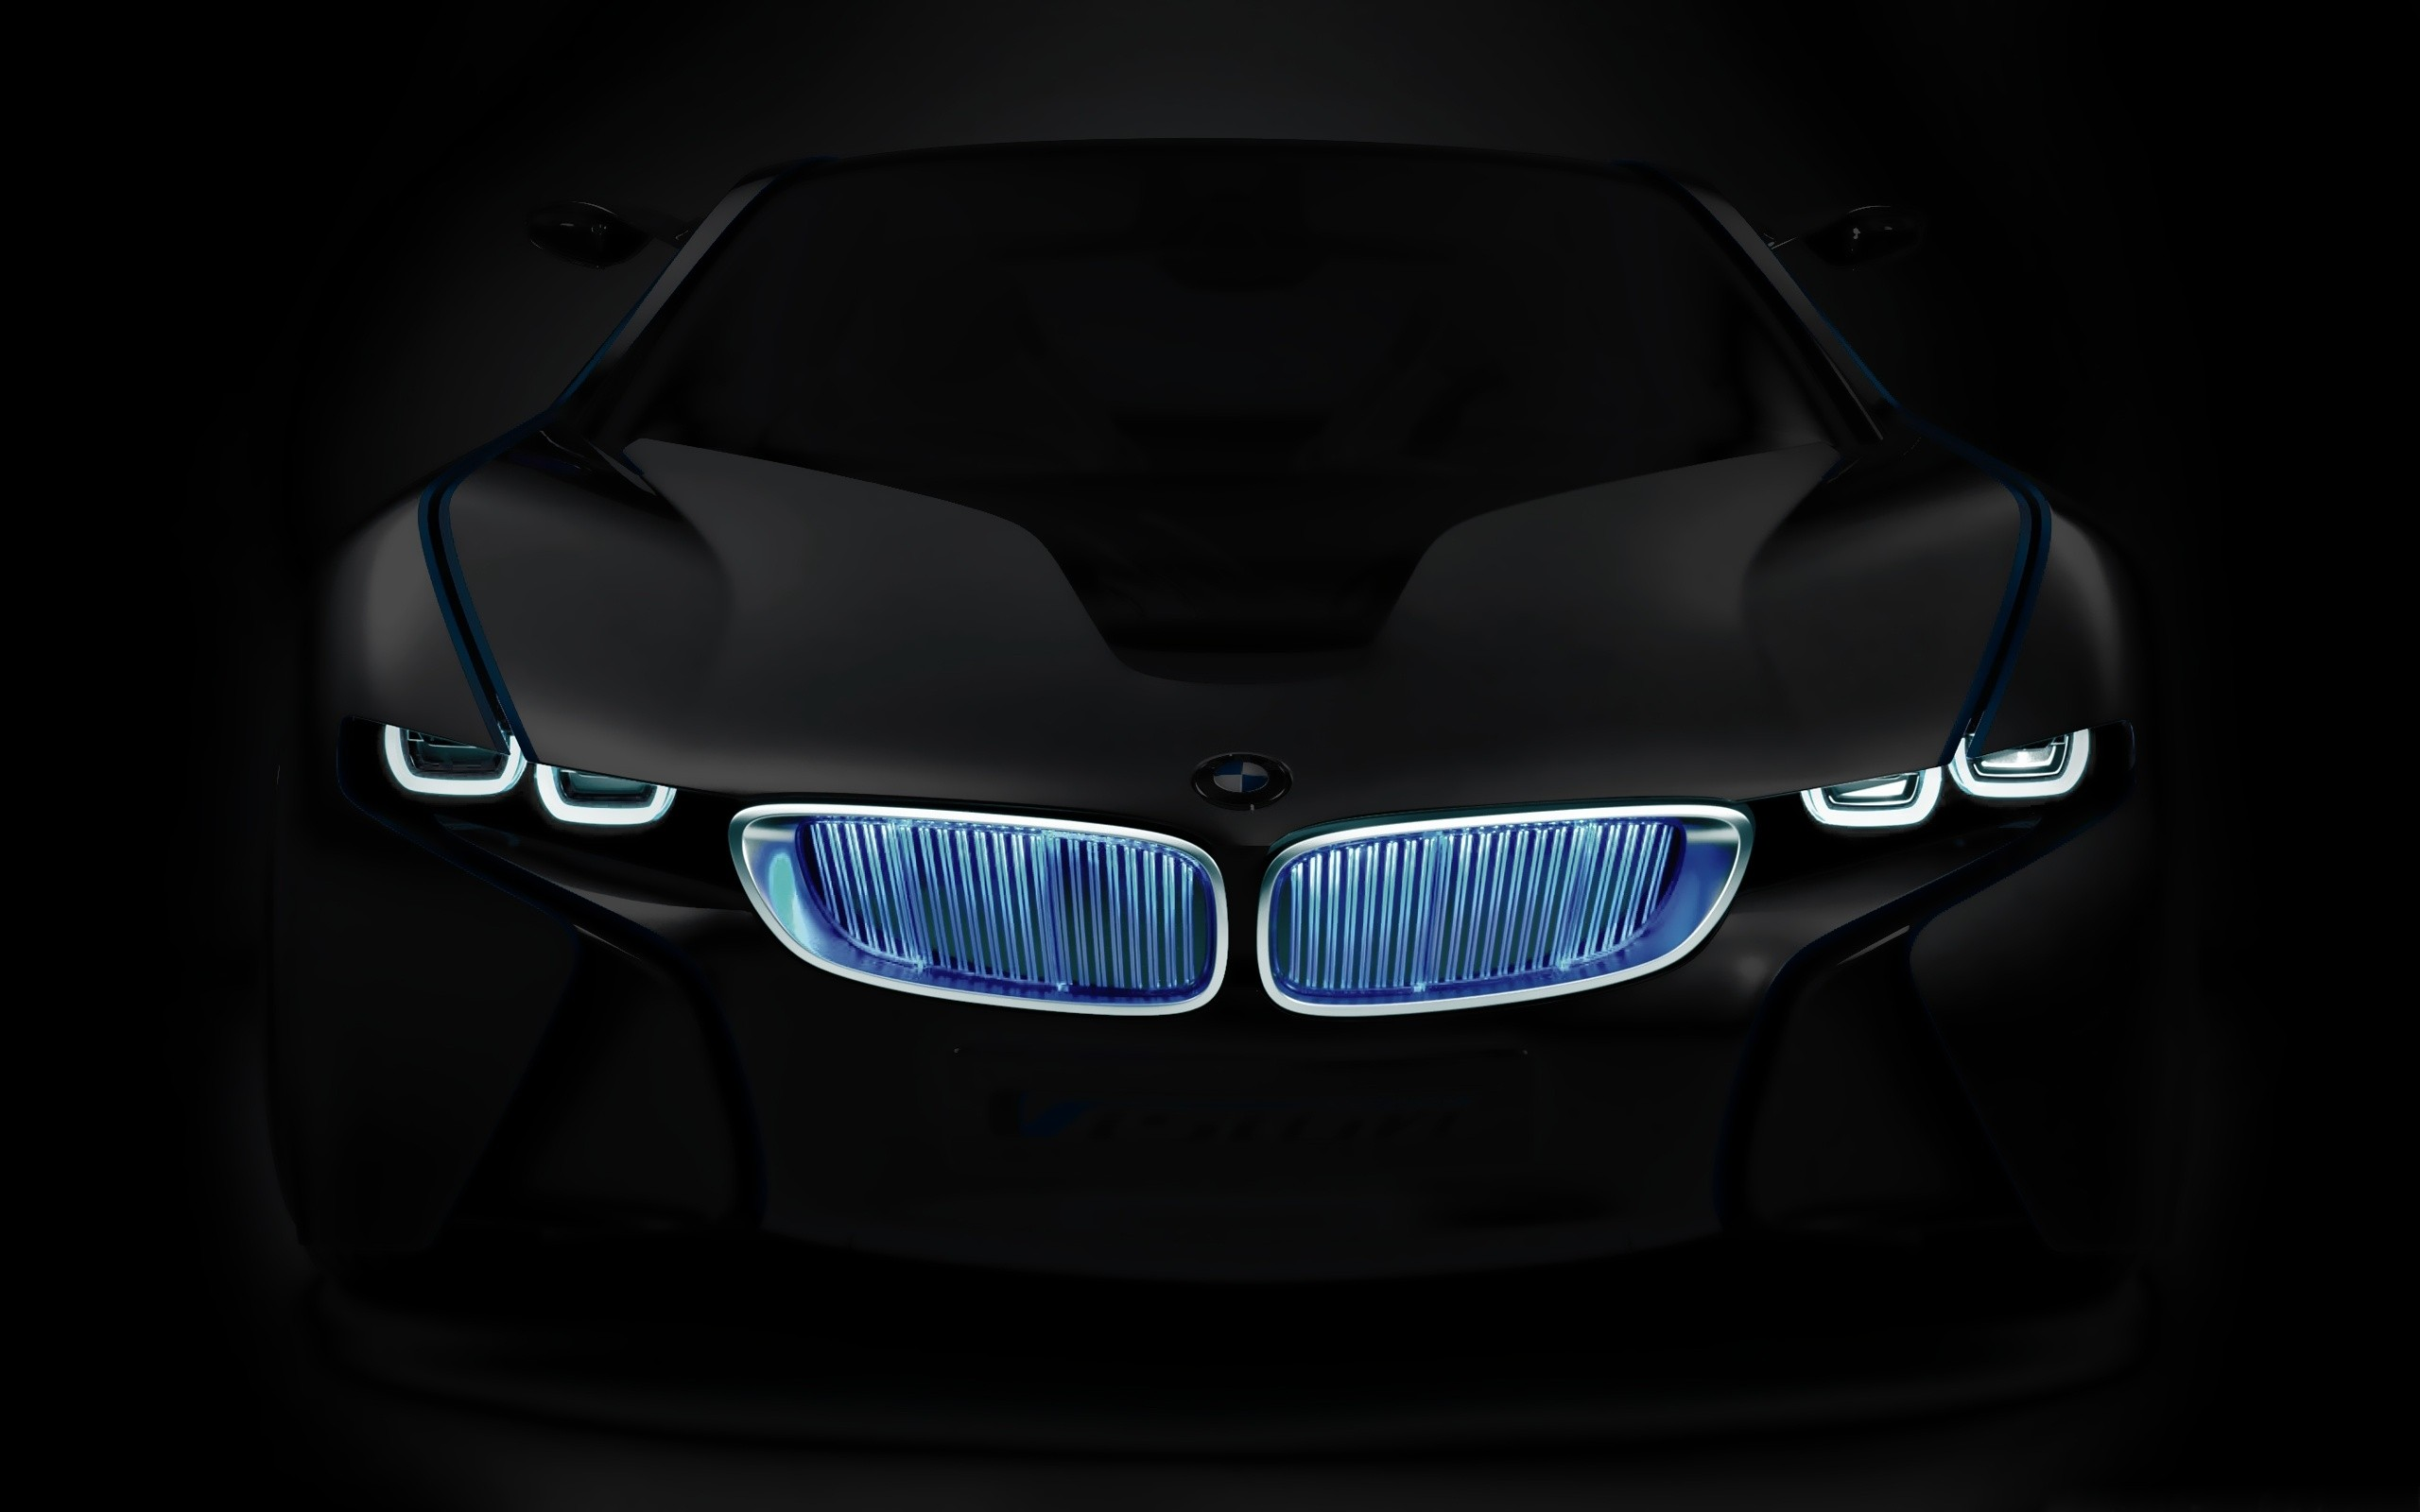 50 Hd Bmw Wallpapers Backgrounds For Free Download